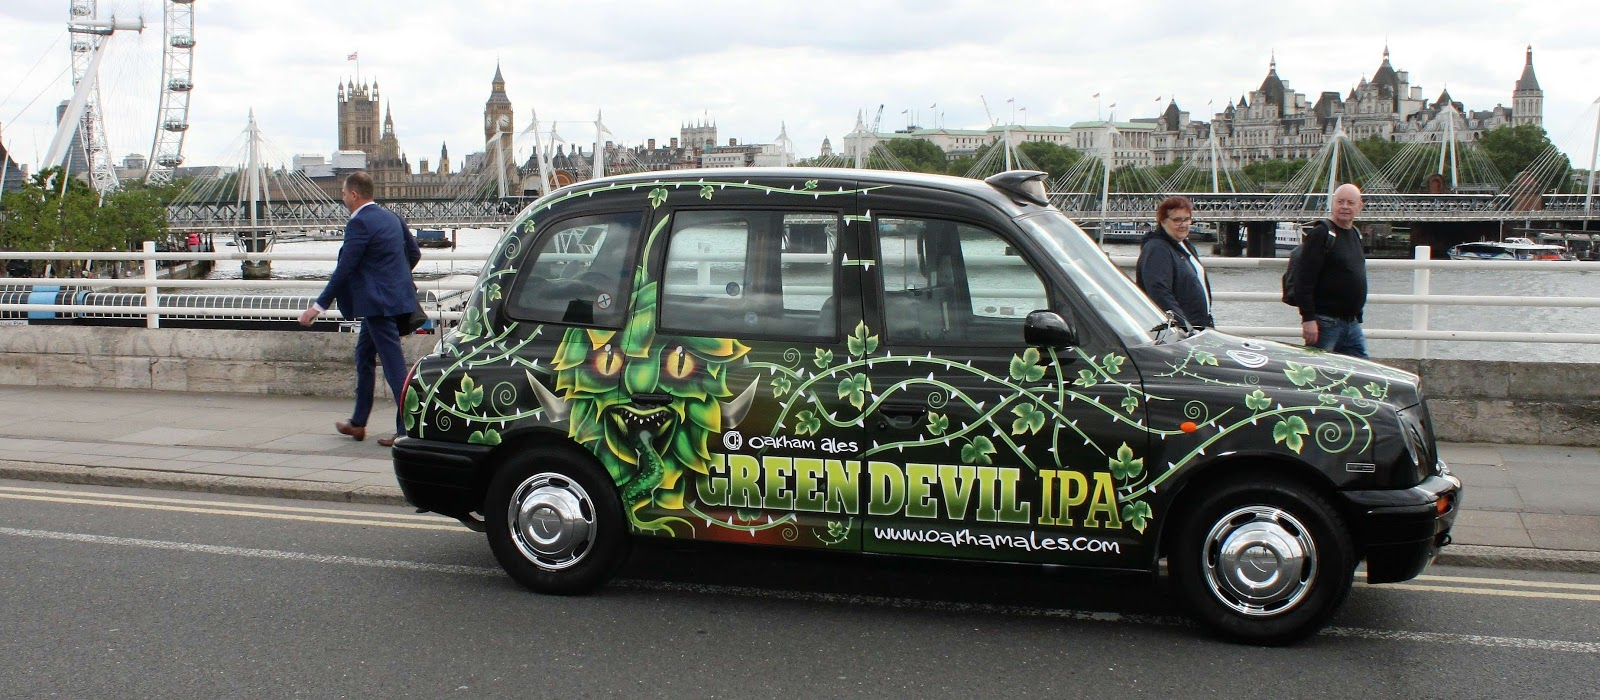 Oakham Ales - Green Devil IPA full wrap taxi